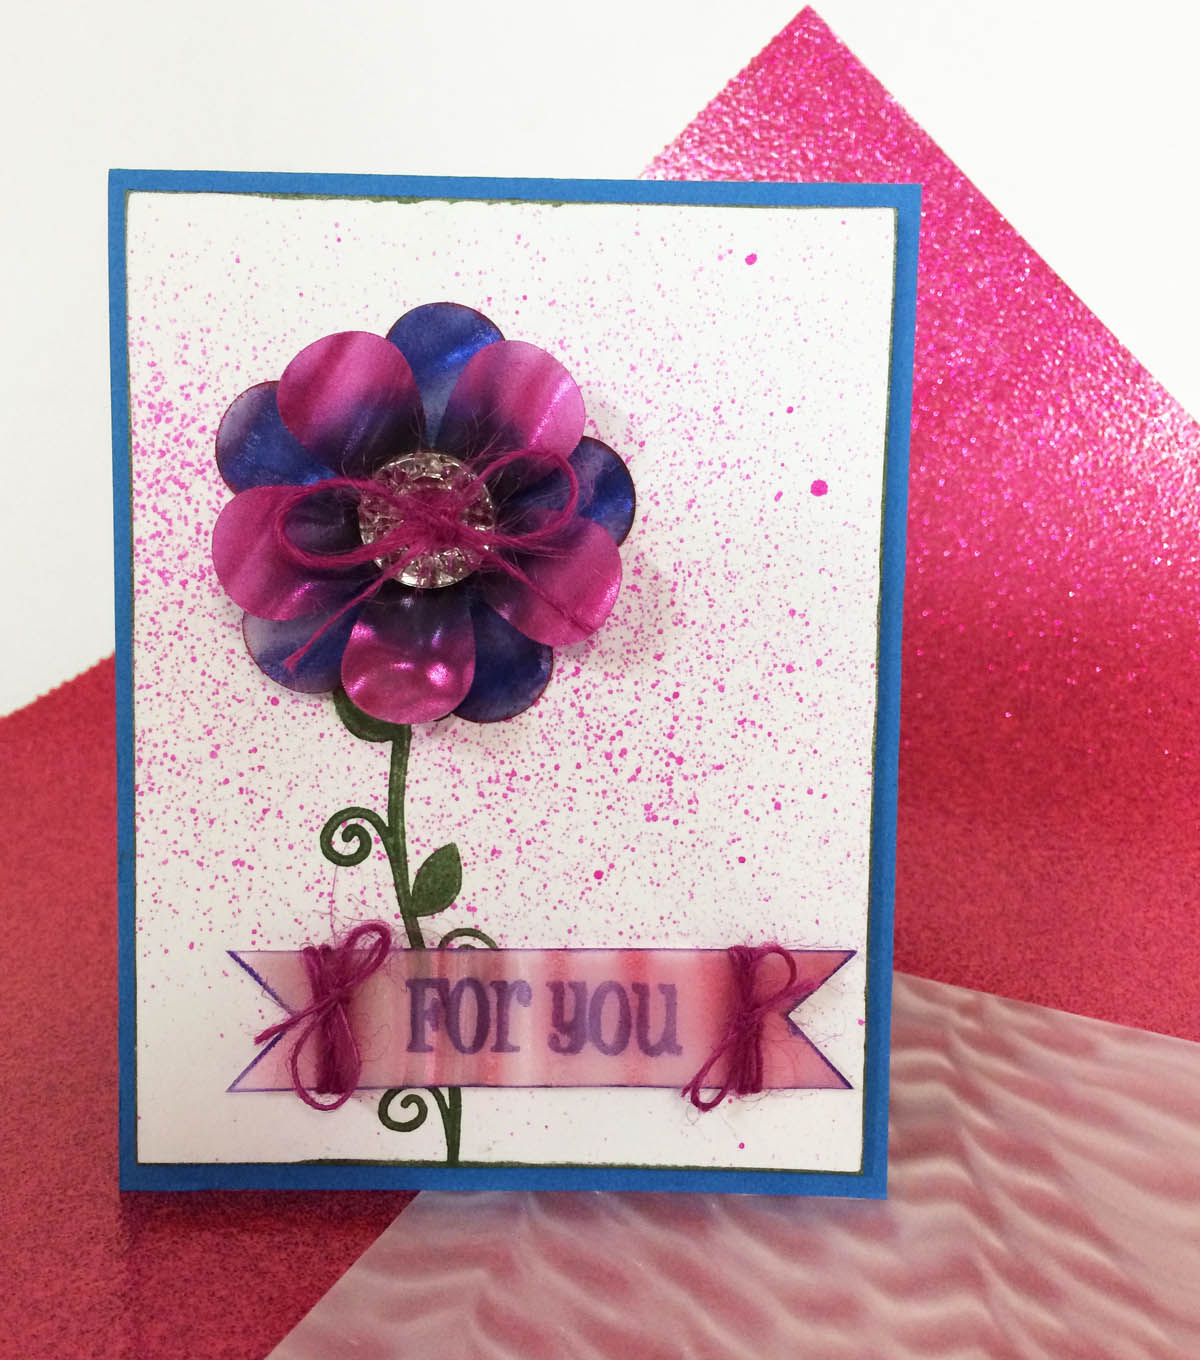 Vertigo \u0022For You\u0022 Card